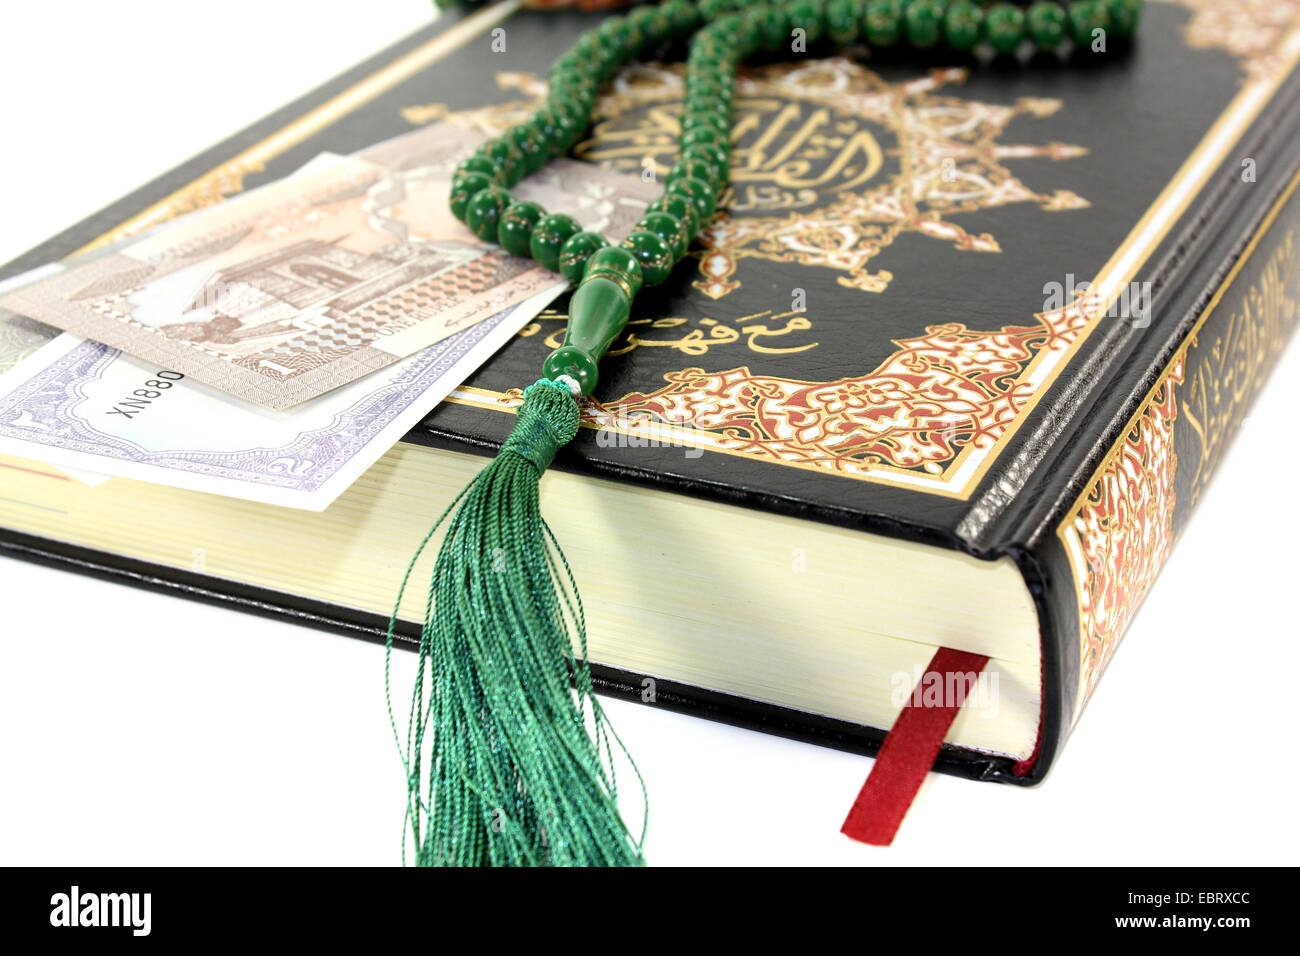 slammed Quran with Pakistani rupee before light background - Stock Image